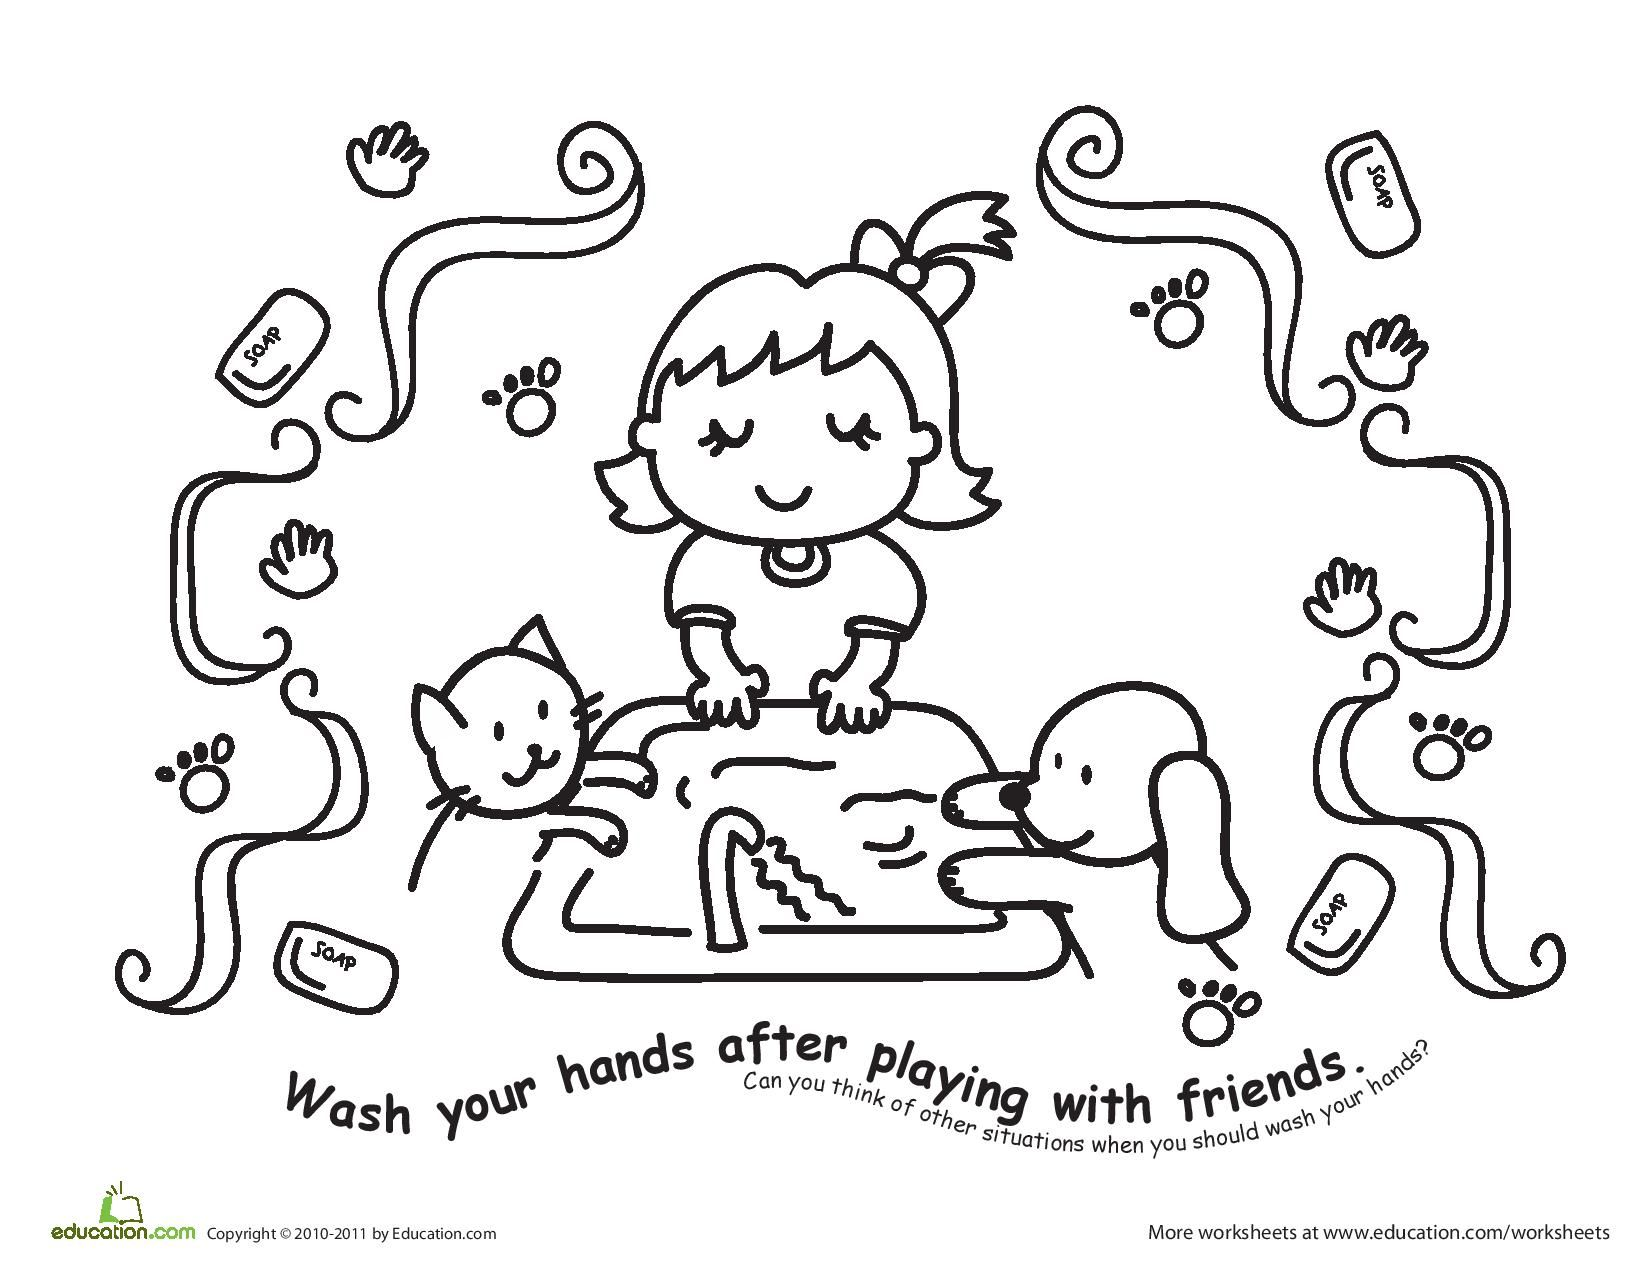 color the hand washing scene  wash your hands after